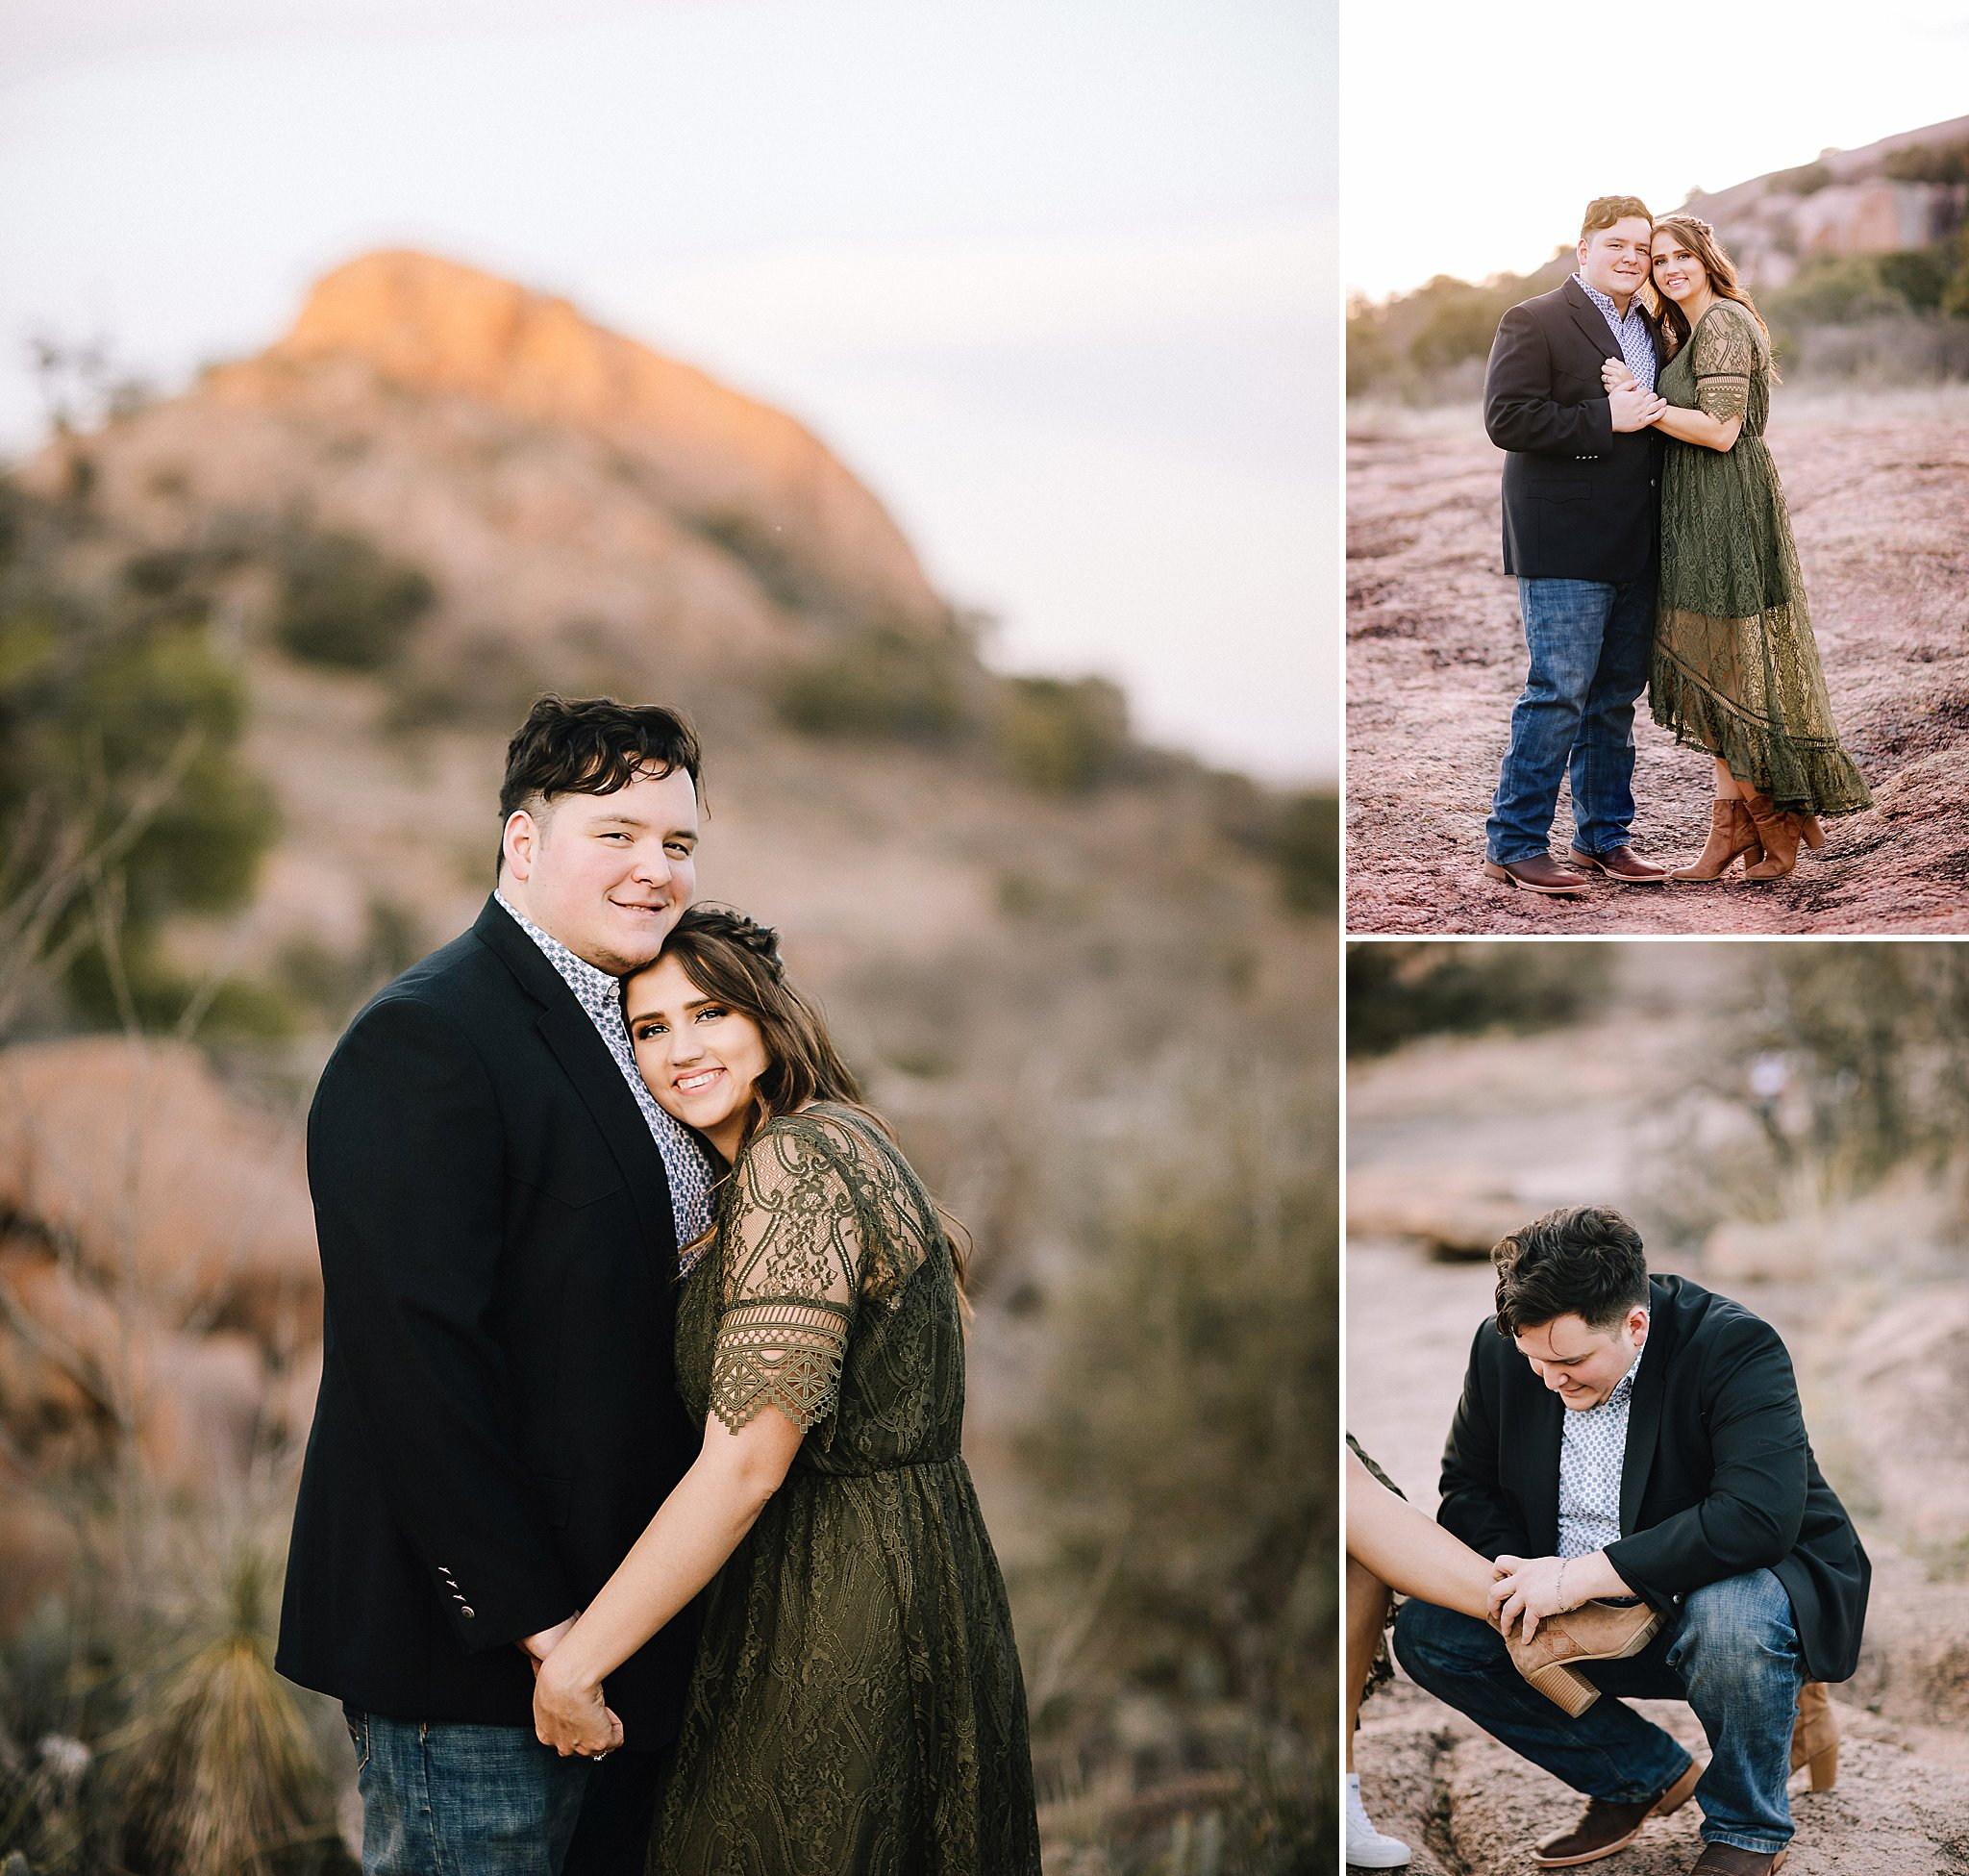 Carly-Barton-Photography-Fredericksburg-Texas-Engagement-Session-Enchanted-Rock-Photos_0007.jpg